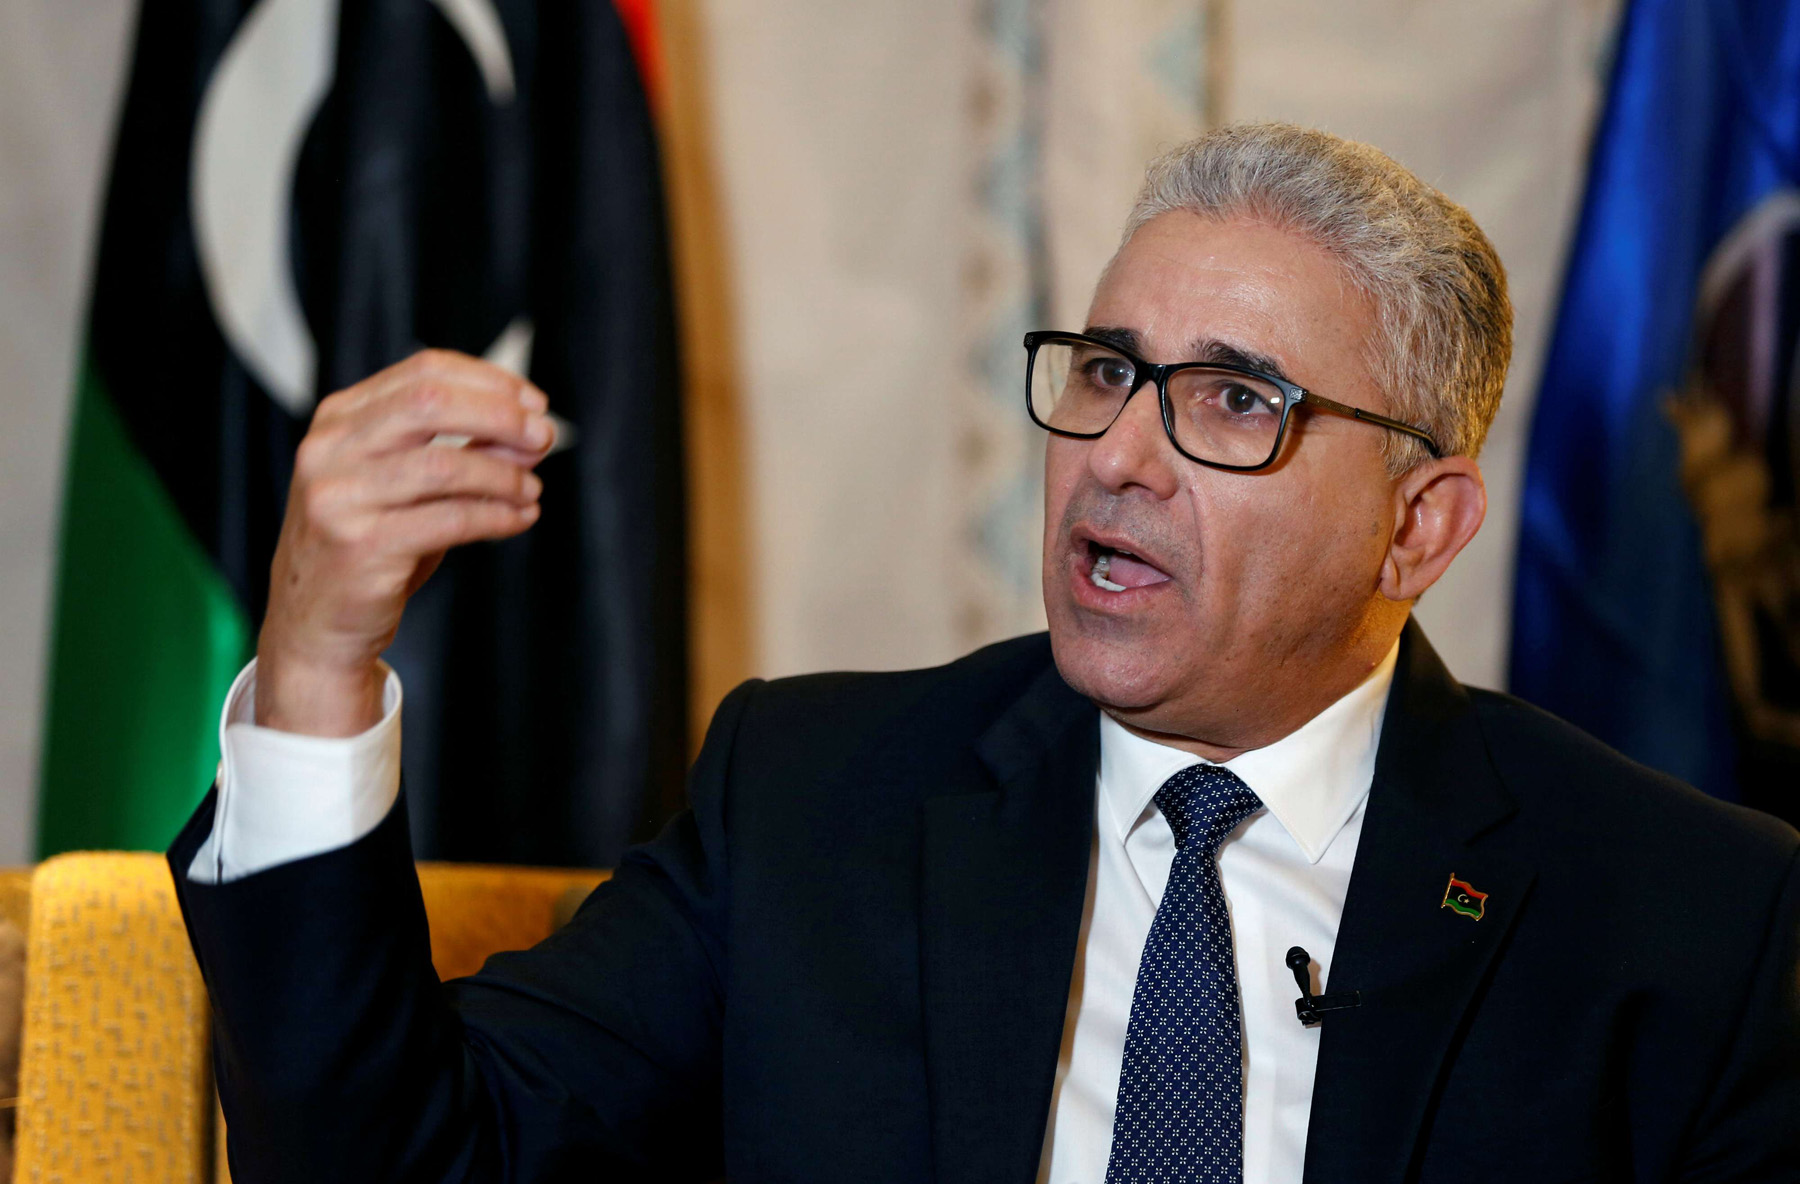 A file picture shows Libya's interior minister Fathi Bashagha speaking during a press interview in March 2020. (REUTERS)